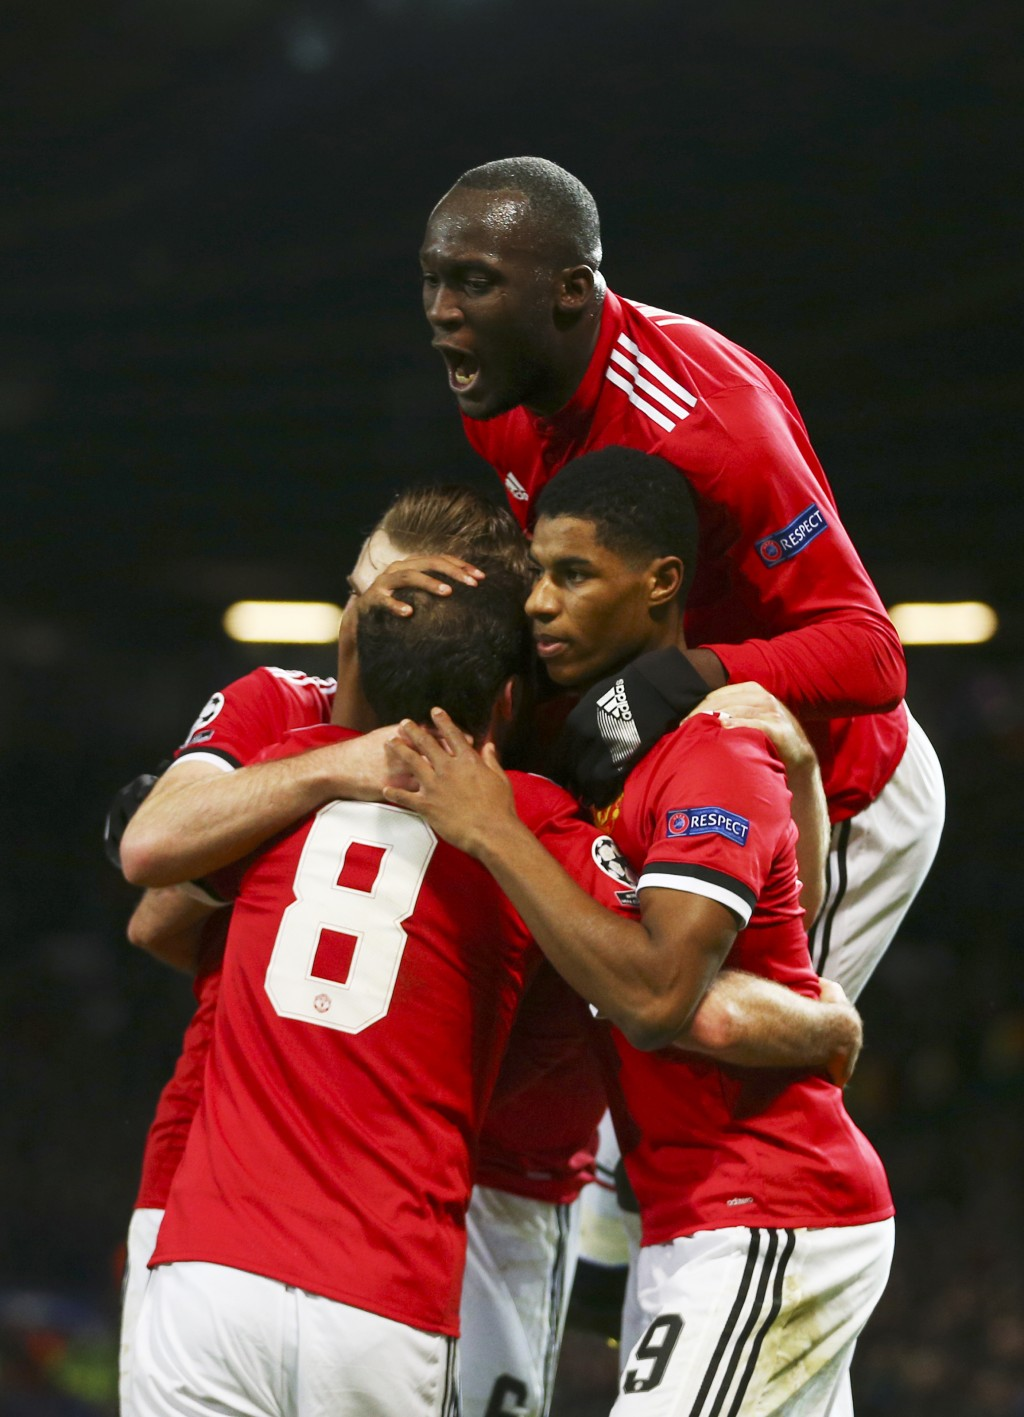 Manchester United's team players celebrate after scoring a goal during the Champions League group A soccer match between Manchester United and CSKA Mo